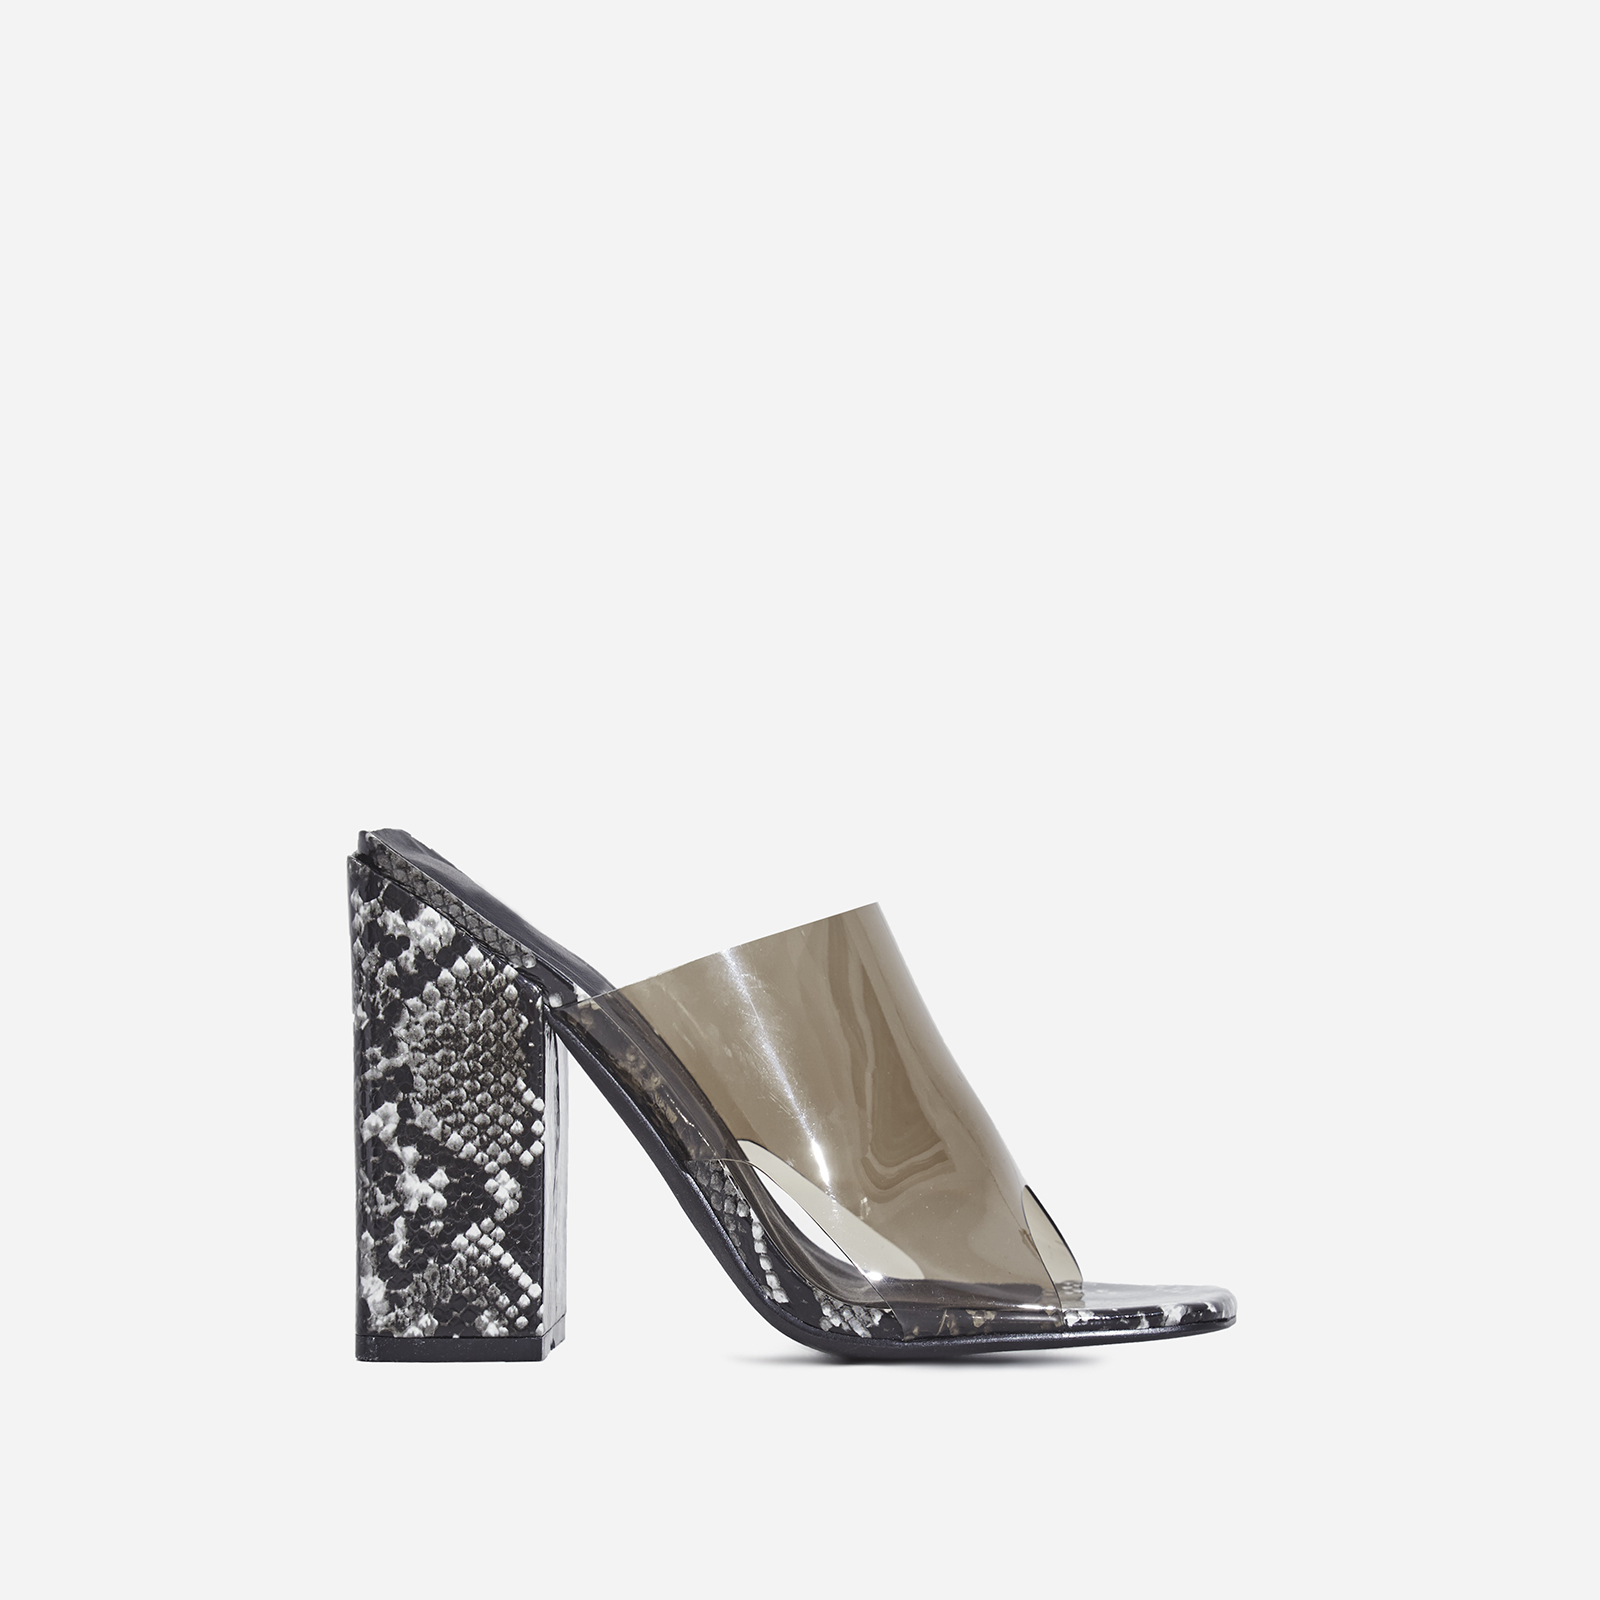 Brooke Block Heel Perspex Peep Toe Mule In Black Snake Print Faux Leather